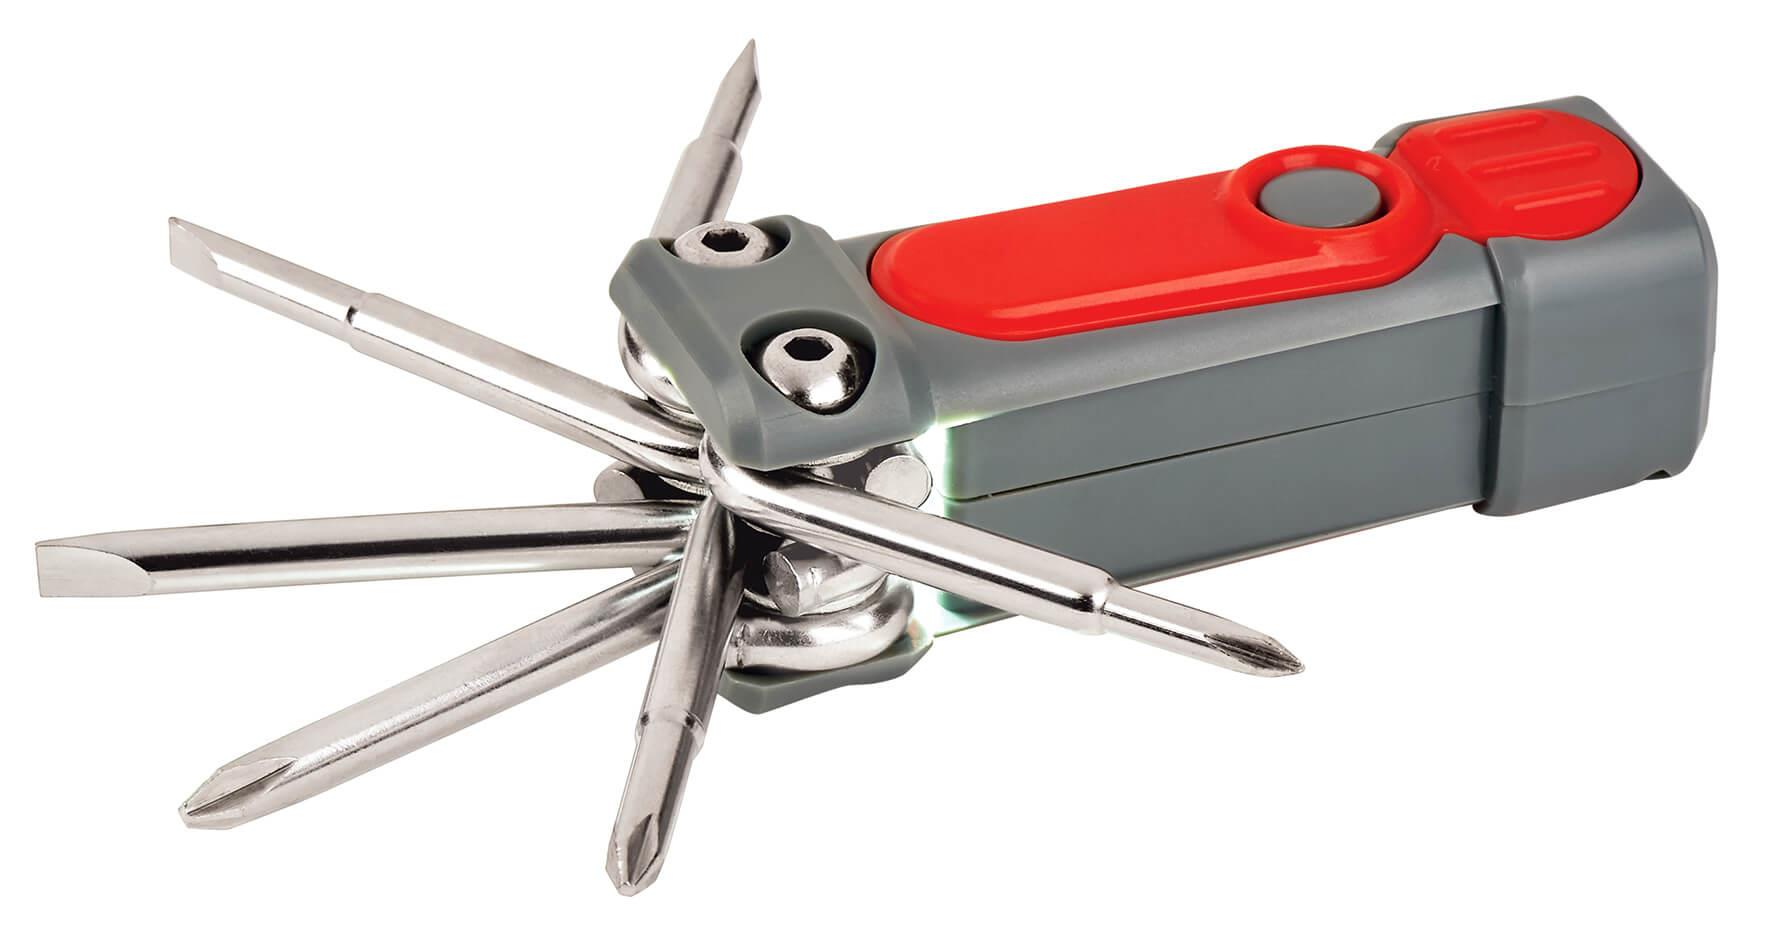 Little helper multi-tool sleutelhanger